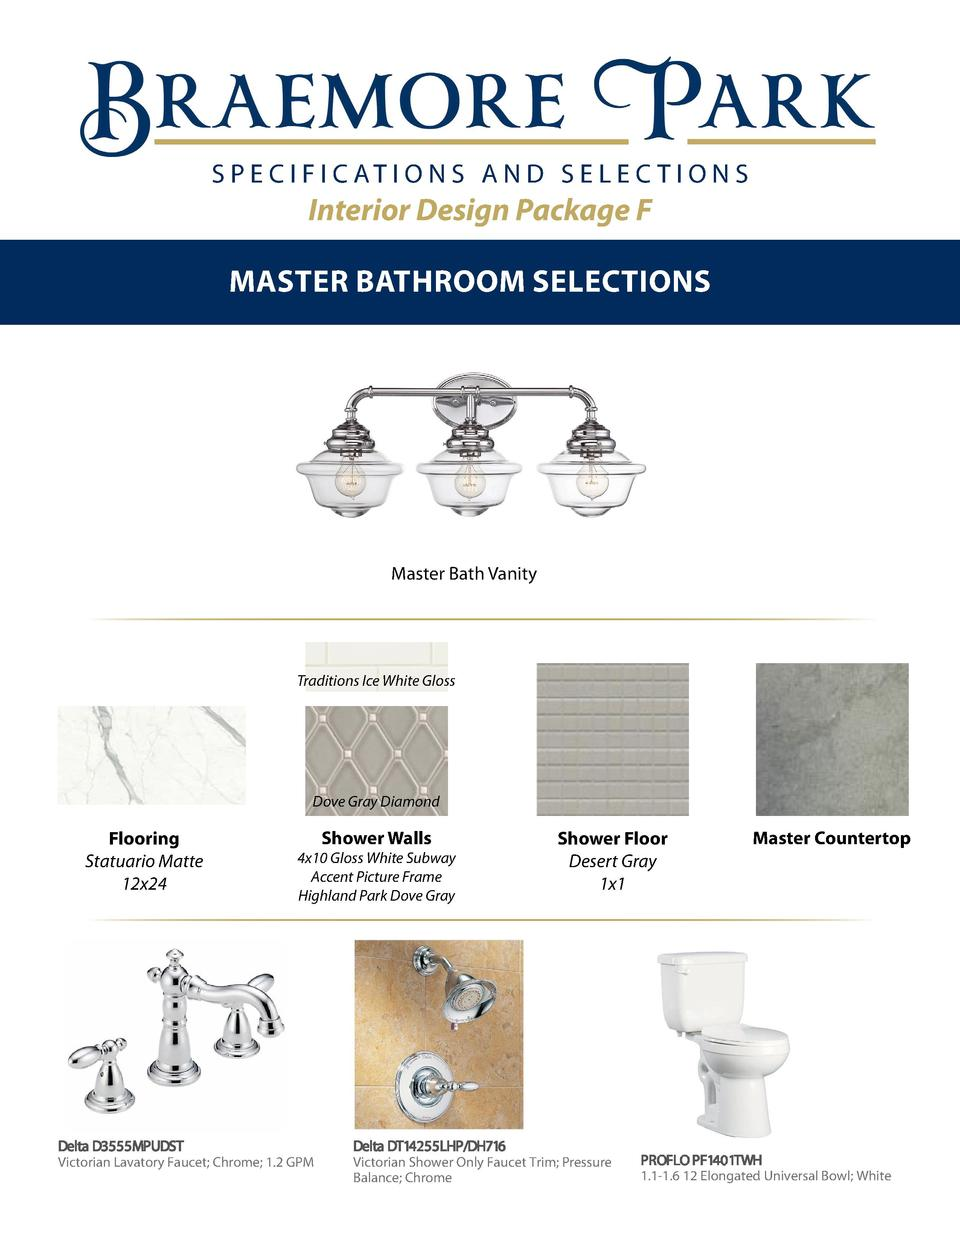 S P E C I F I C AT I O N S A N D S E L E C T I O N S  Interior Design Package F Master Bathroom Selections  Braemore     L...